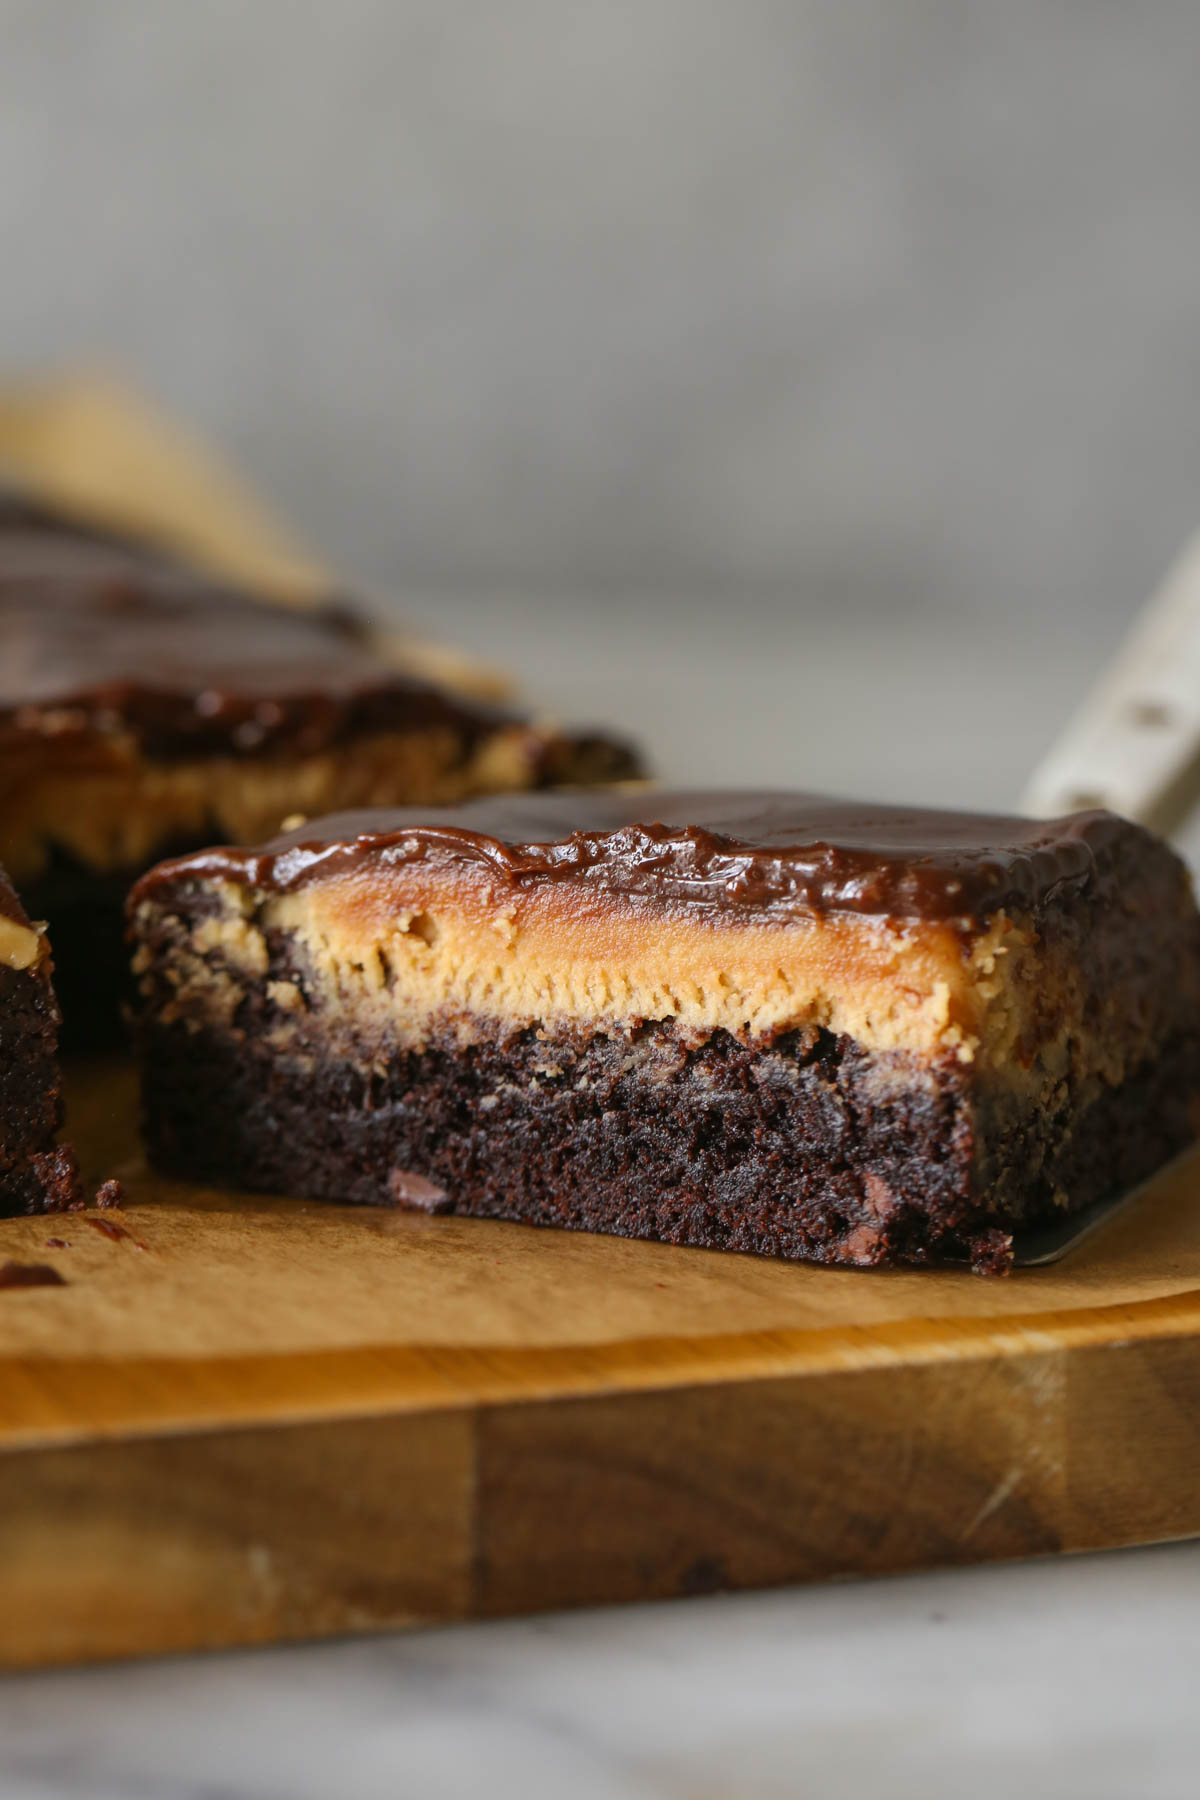 Close up shot of a cut piece of Chocolate Peanut Butter Brownie, showing the three layers.